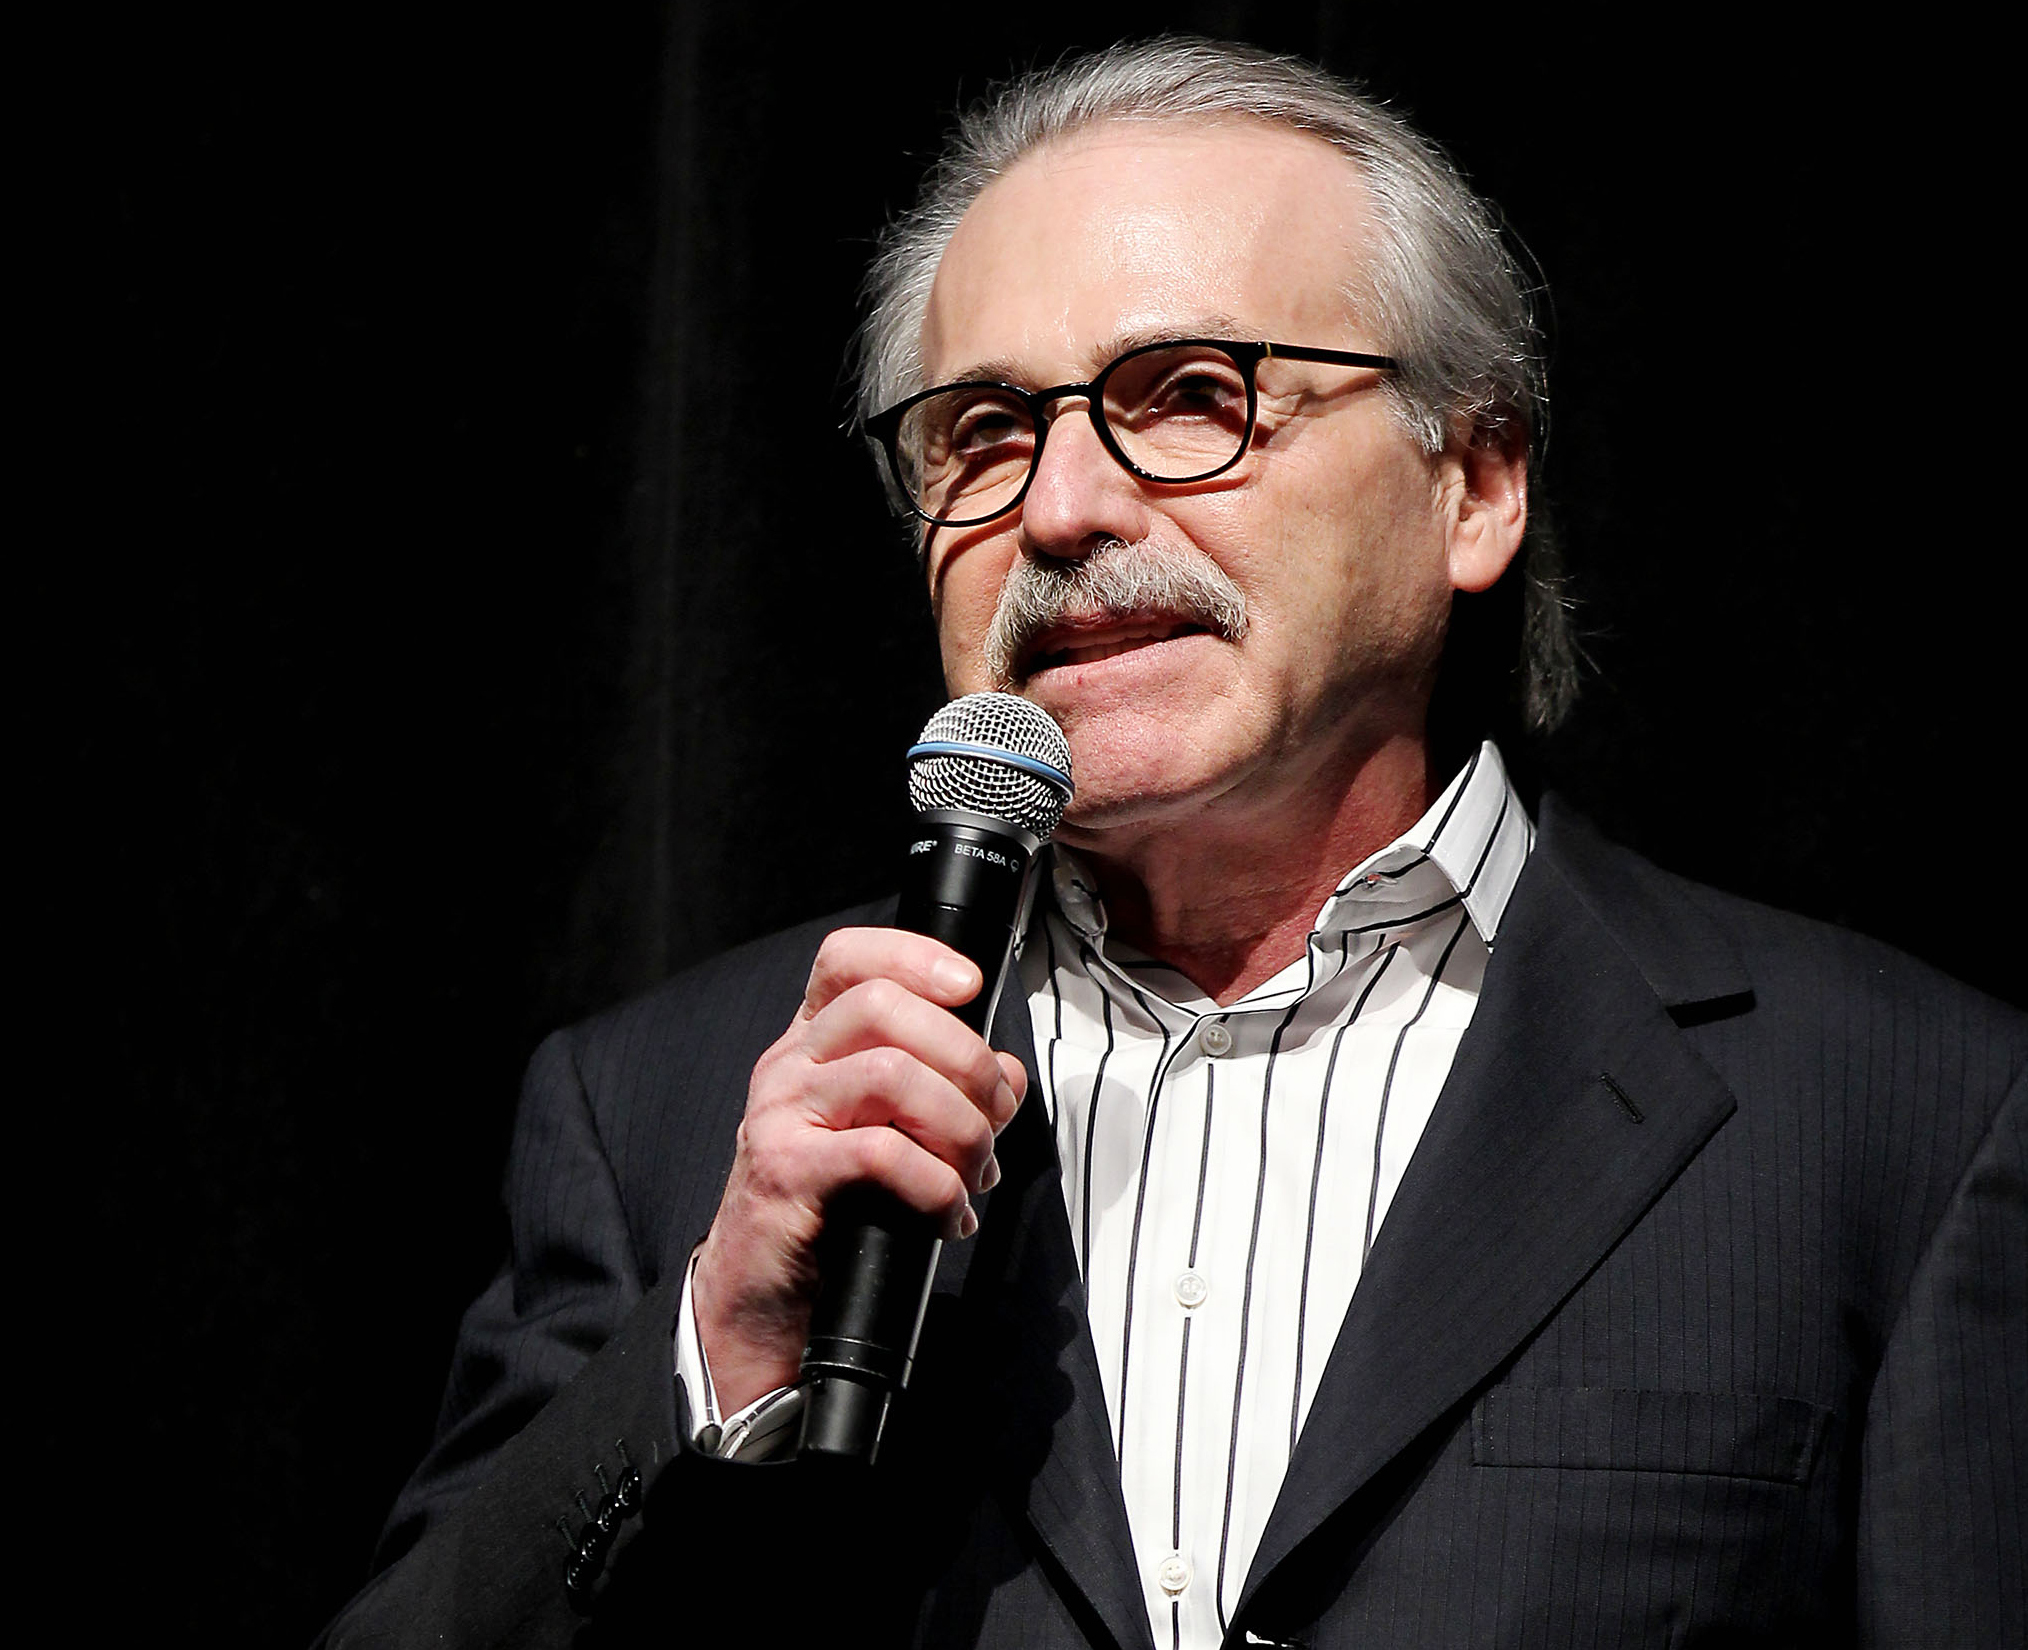 In this Jan. 31, 2014 photo David Pecker,  David Pecker, Chairman and CEO of American Media, addresses those attending the Shape & Men's Fitness Super Bowl Party in New York. The Aug. 21, 2018 plea deal reached by Donald Trump's former attorney Michael Cohen has laid bare a relationship between the president and Pecker, whose company publishes the National Enquirer. Besides detailing tabloid's involvement in payoffs to porn star Stormy Daniels and Playboy Playmate Karen McDougal to keep quiet about alleged affairs with Trump, court papers showed how David Pecker, a longtime friend of the president, offered to help Trump stave off negative stories during the 2016 campaign. (AP Photo/Marion Curtis)